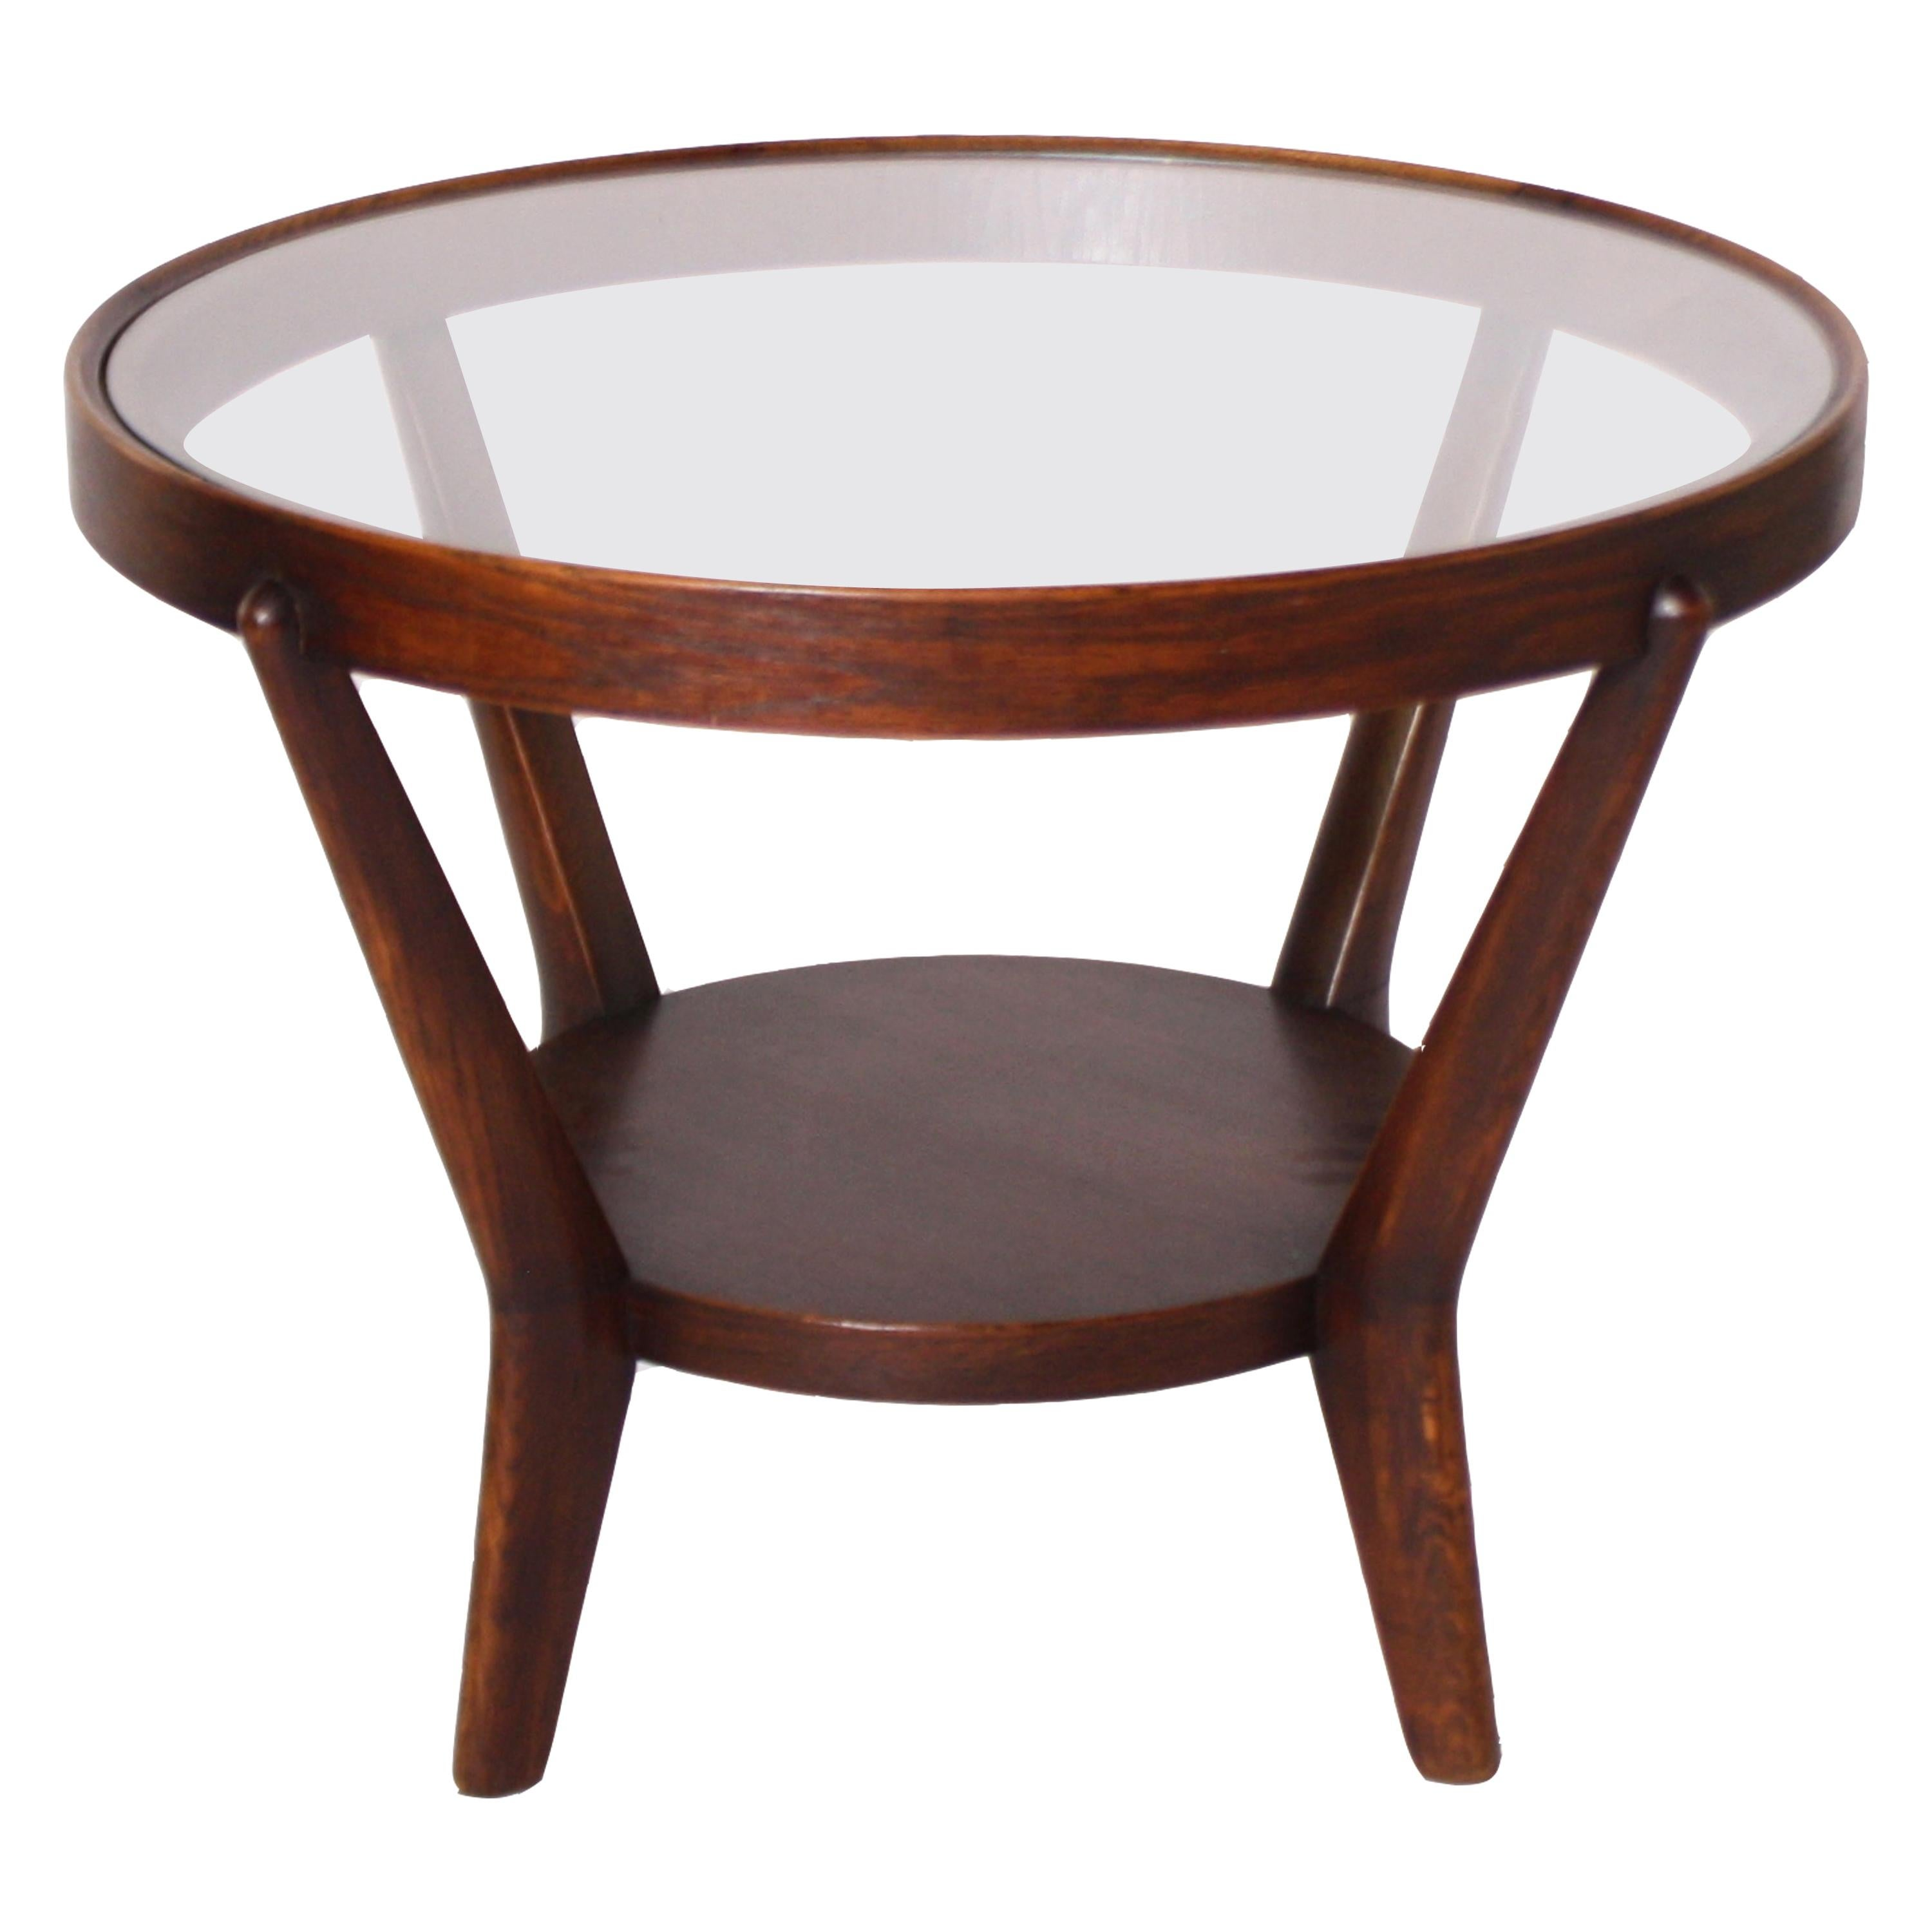 Round Mahogany Table with Glass Top, circa 1950